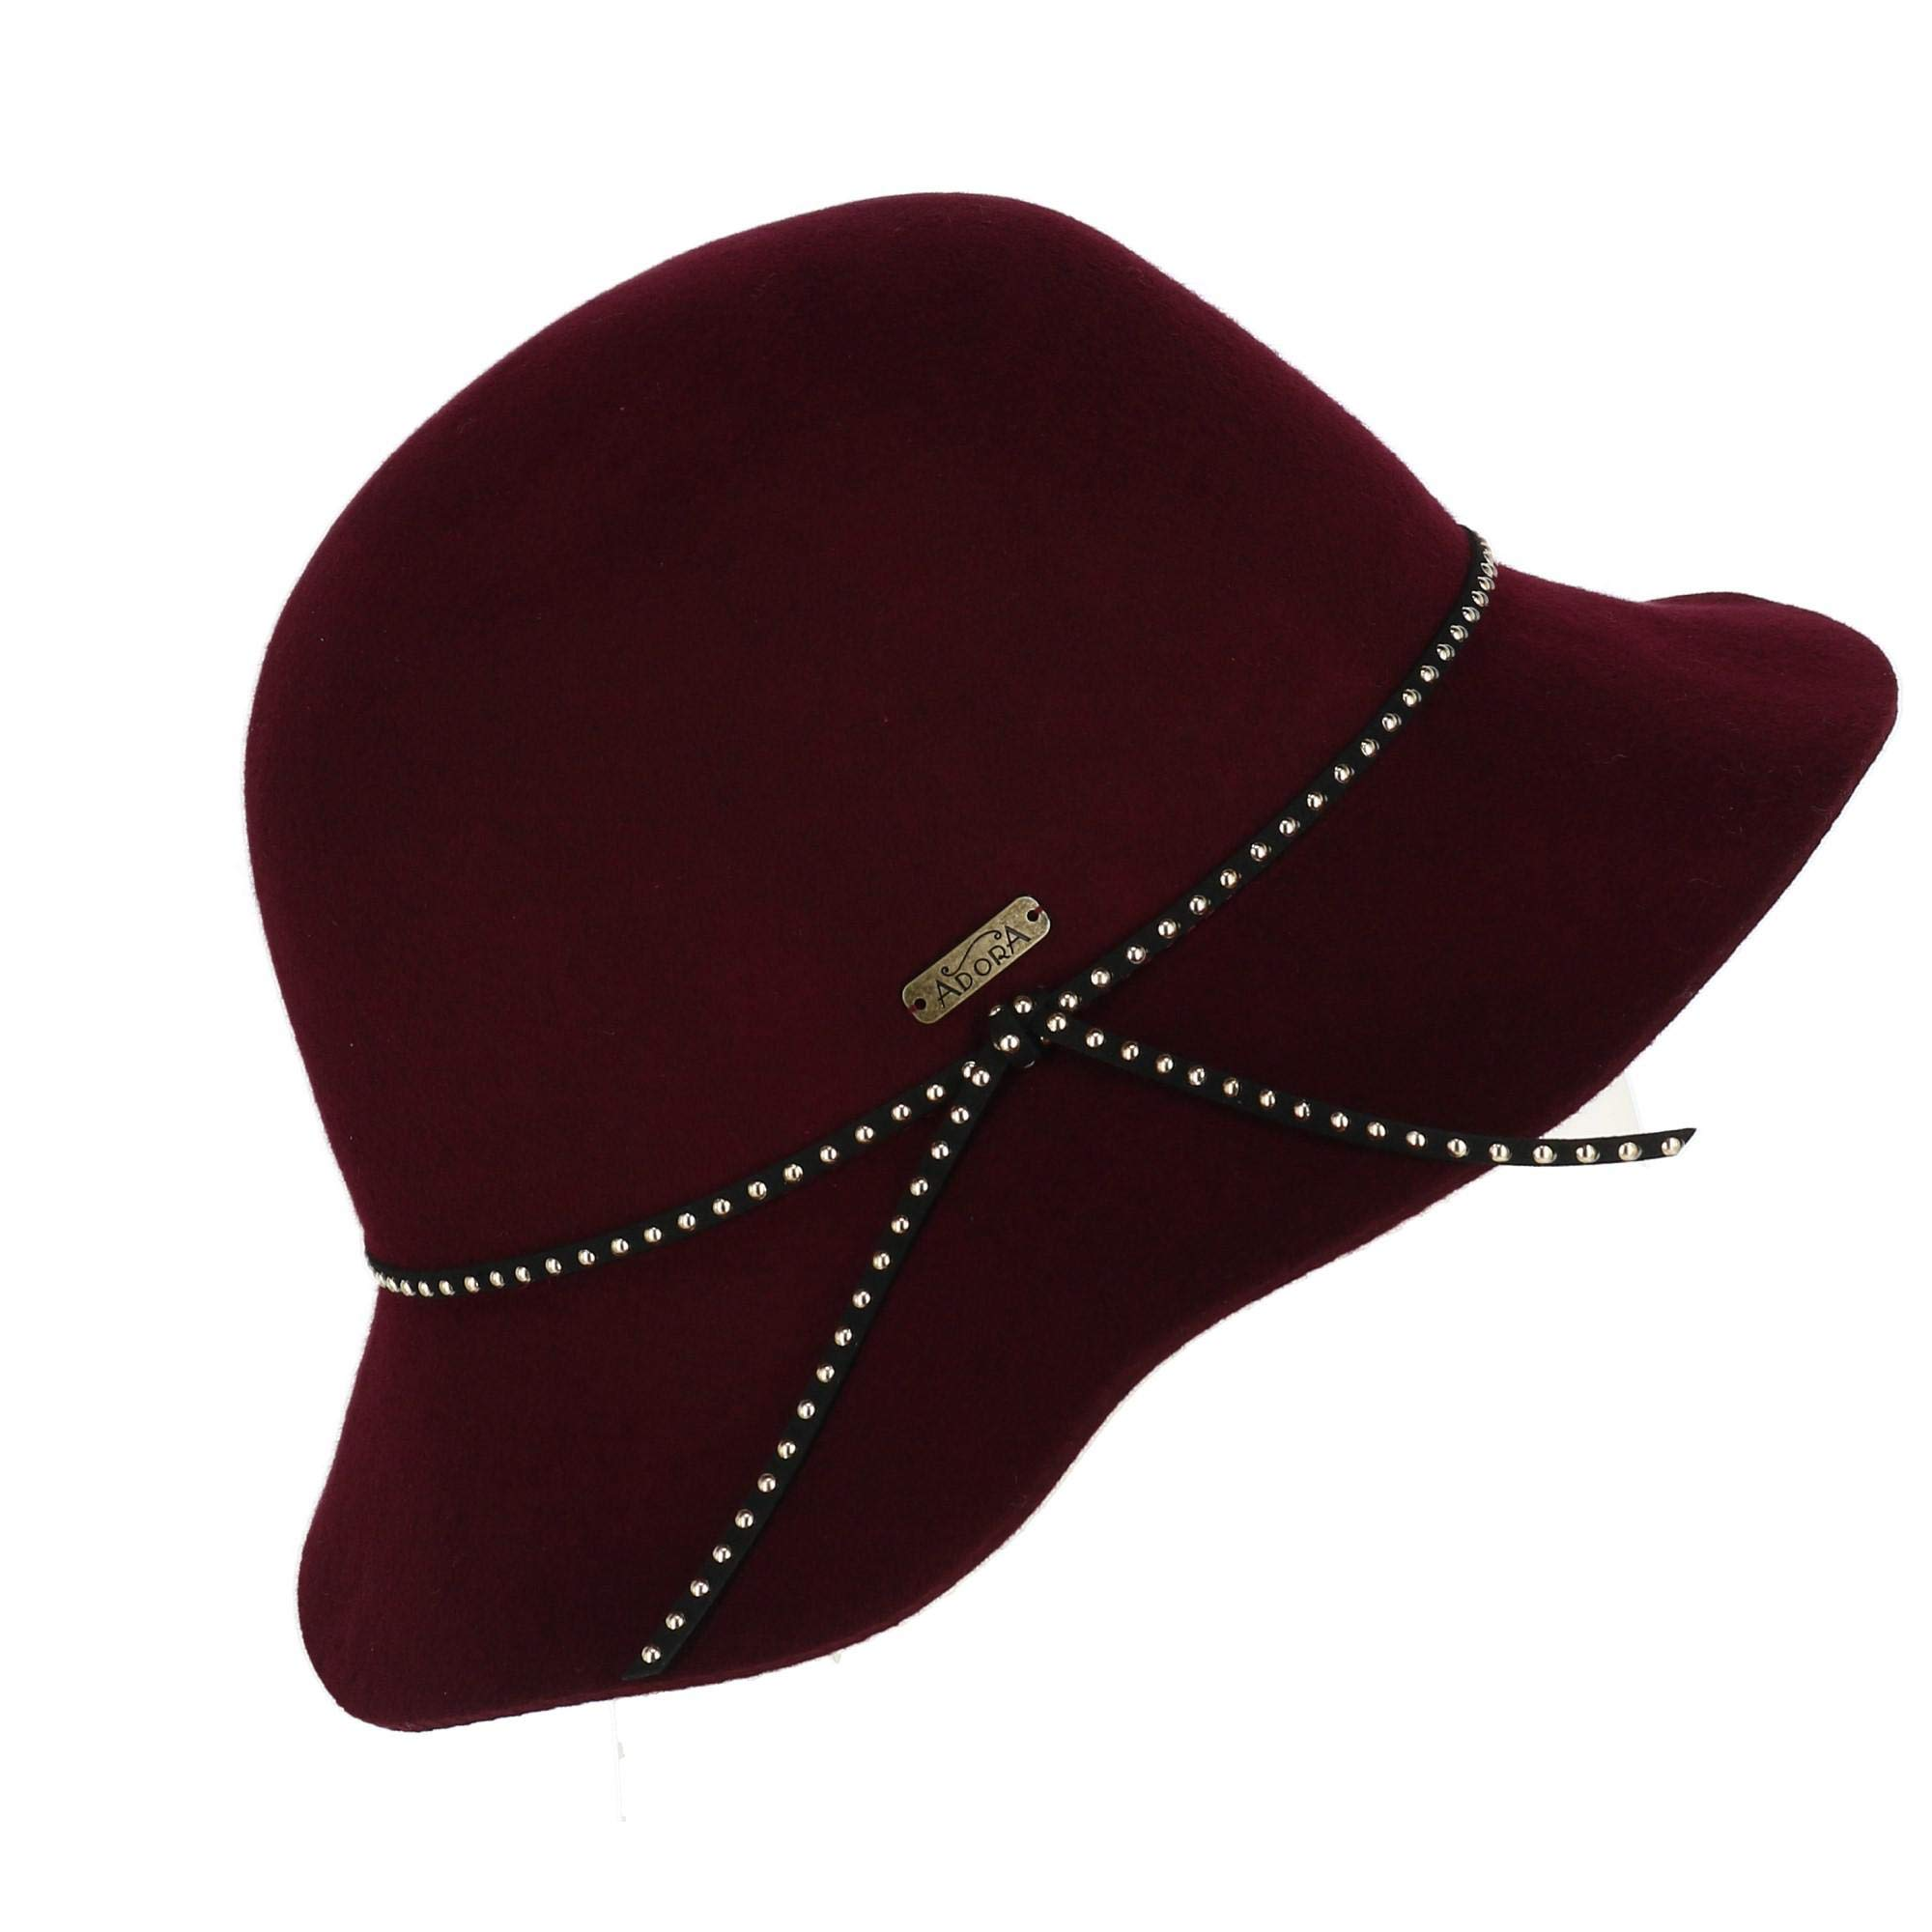 Betmar Adora Women's Wool Felt Cloche with Studded Faux Leather Band, Burgundy by Adora